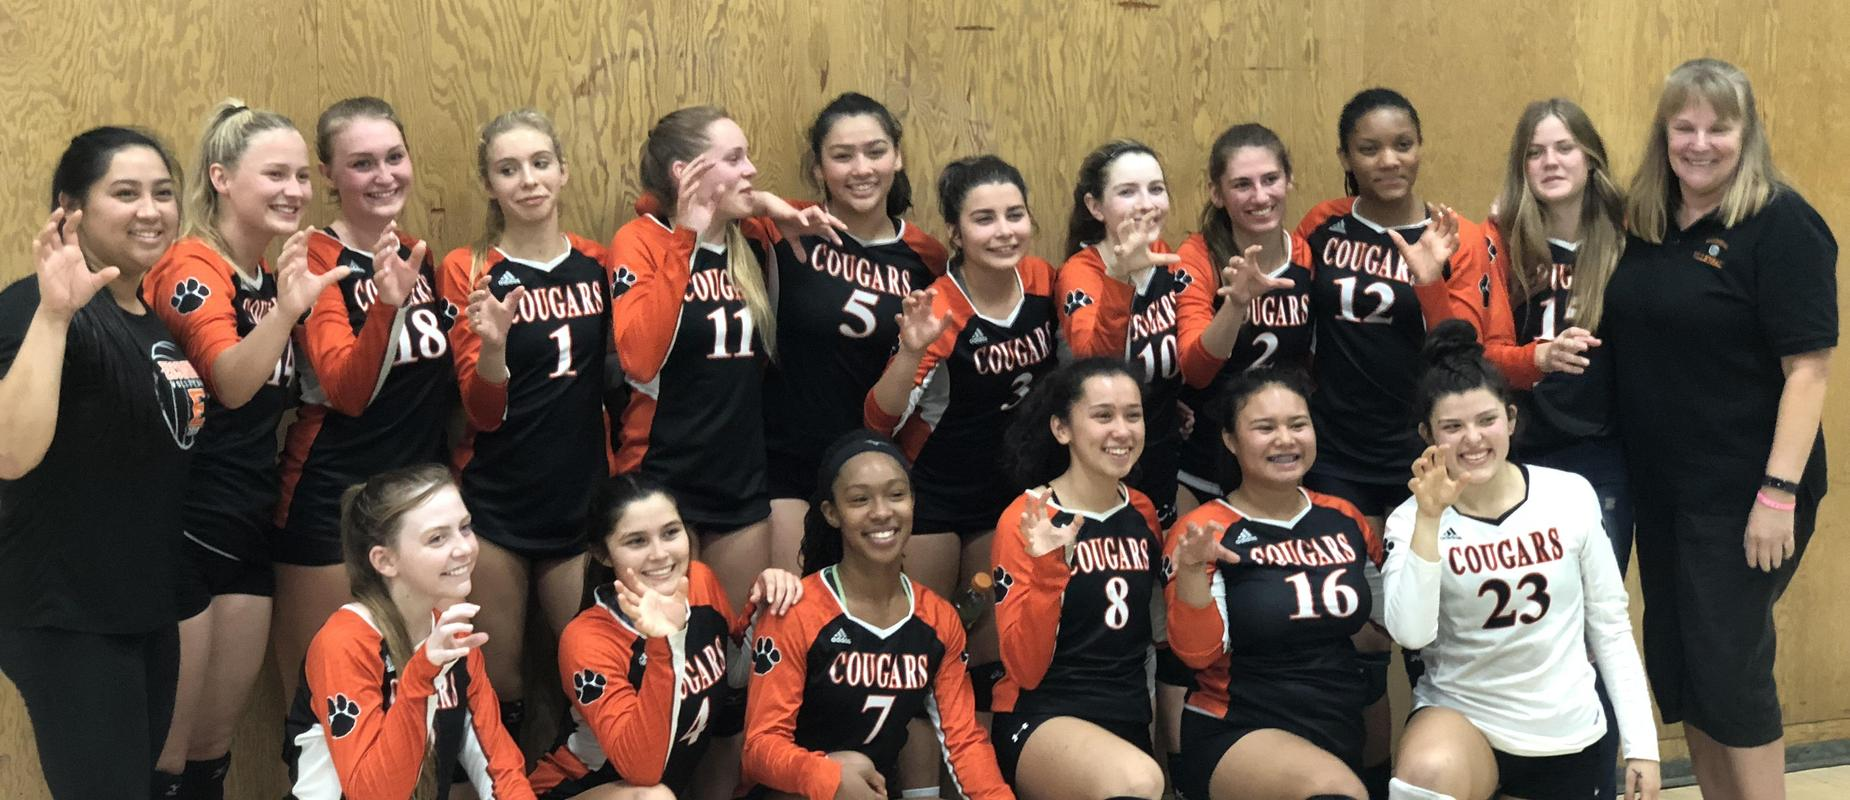 Girls Volleyball Team in the CIS semi-finals at Patrick Henry High School